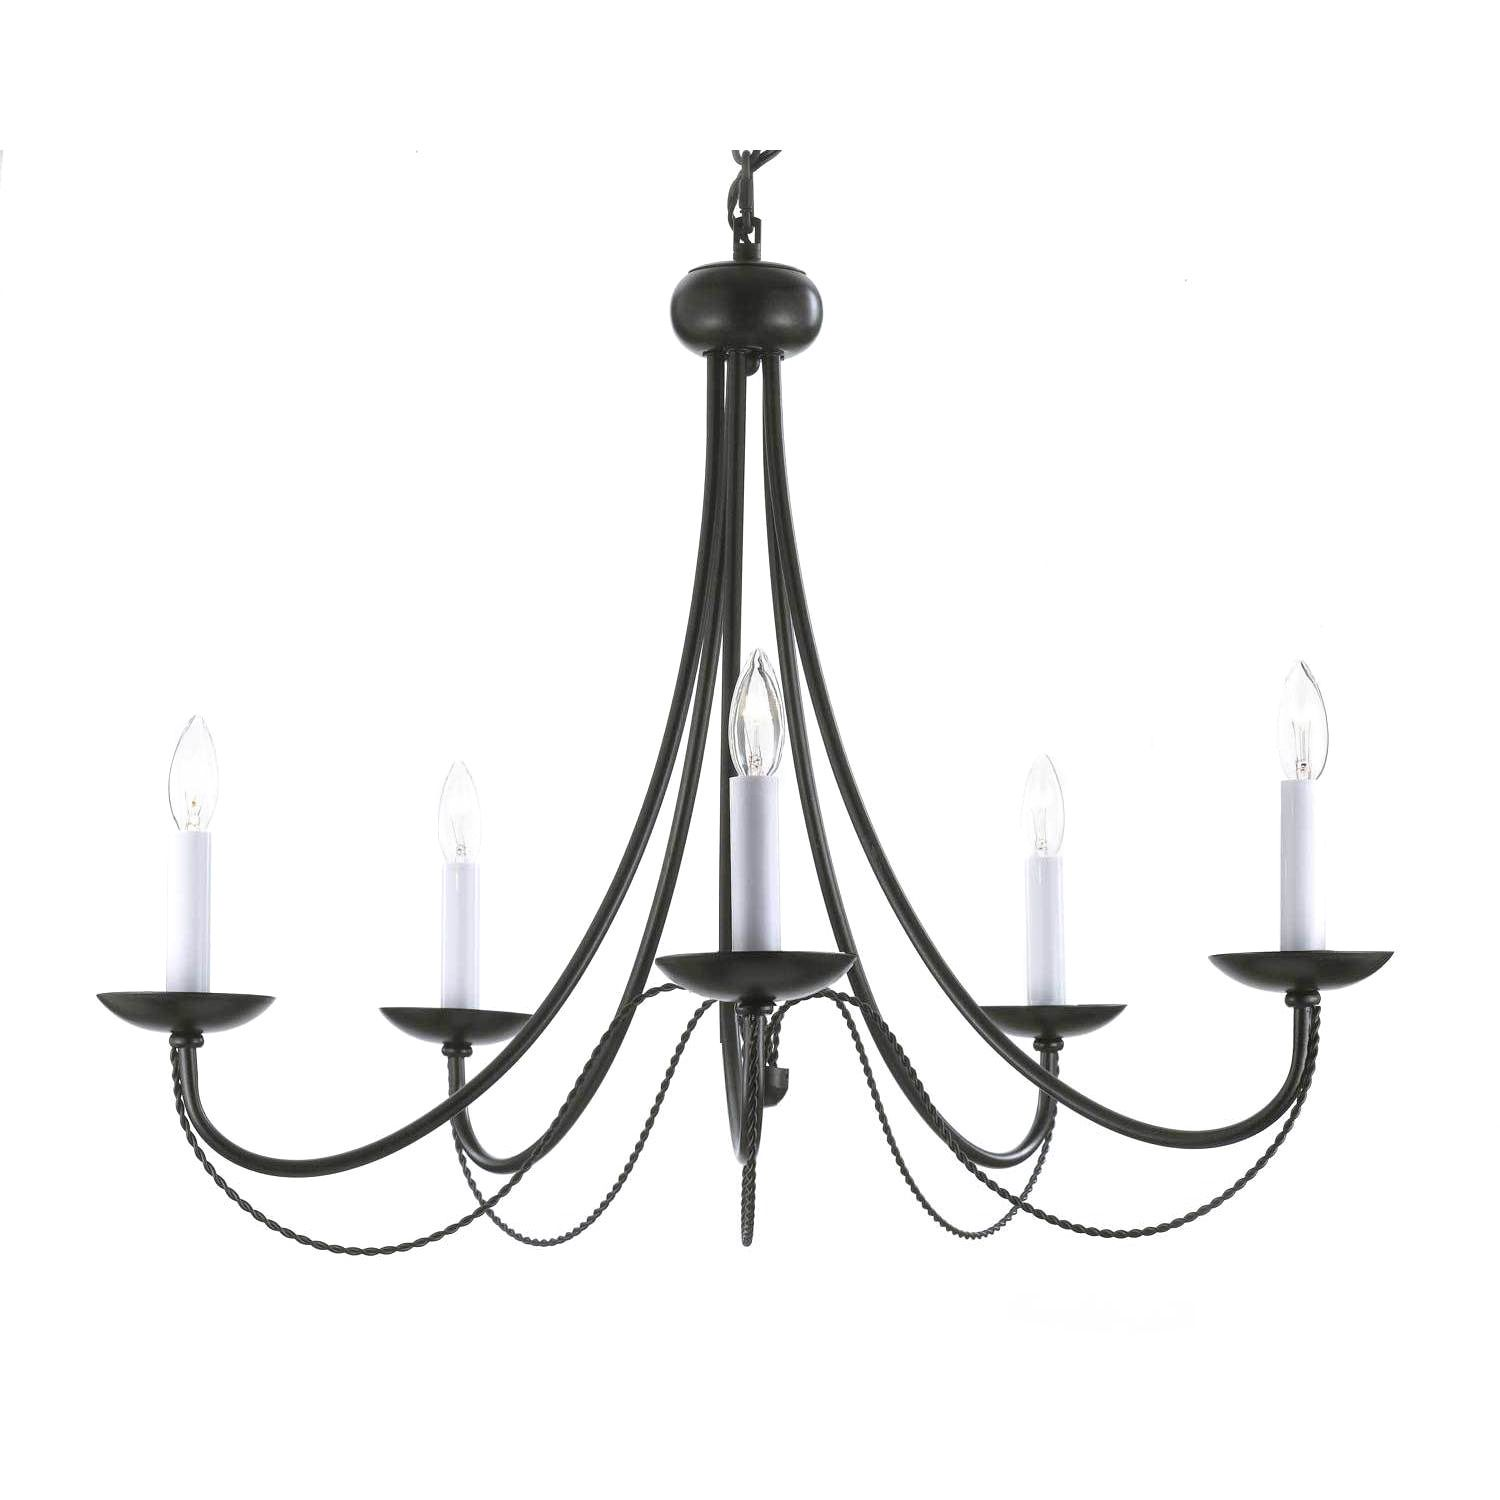 Draping curvy lines are constructed with wrought iron and